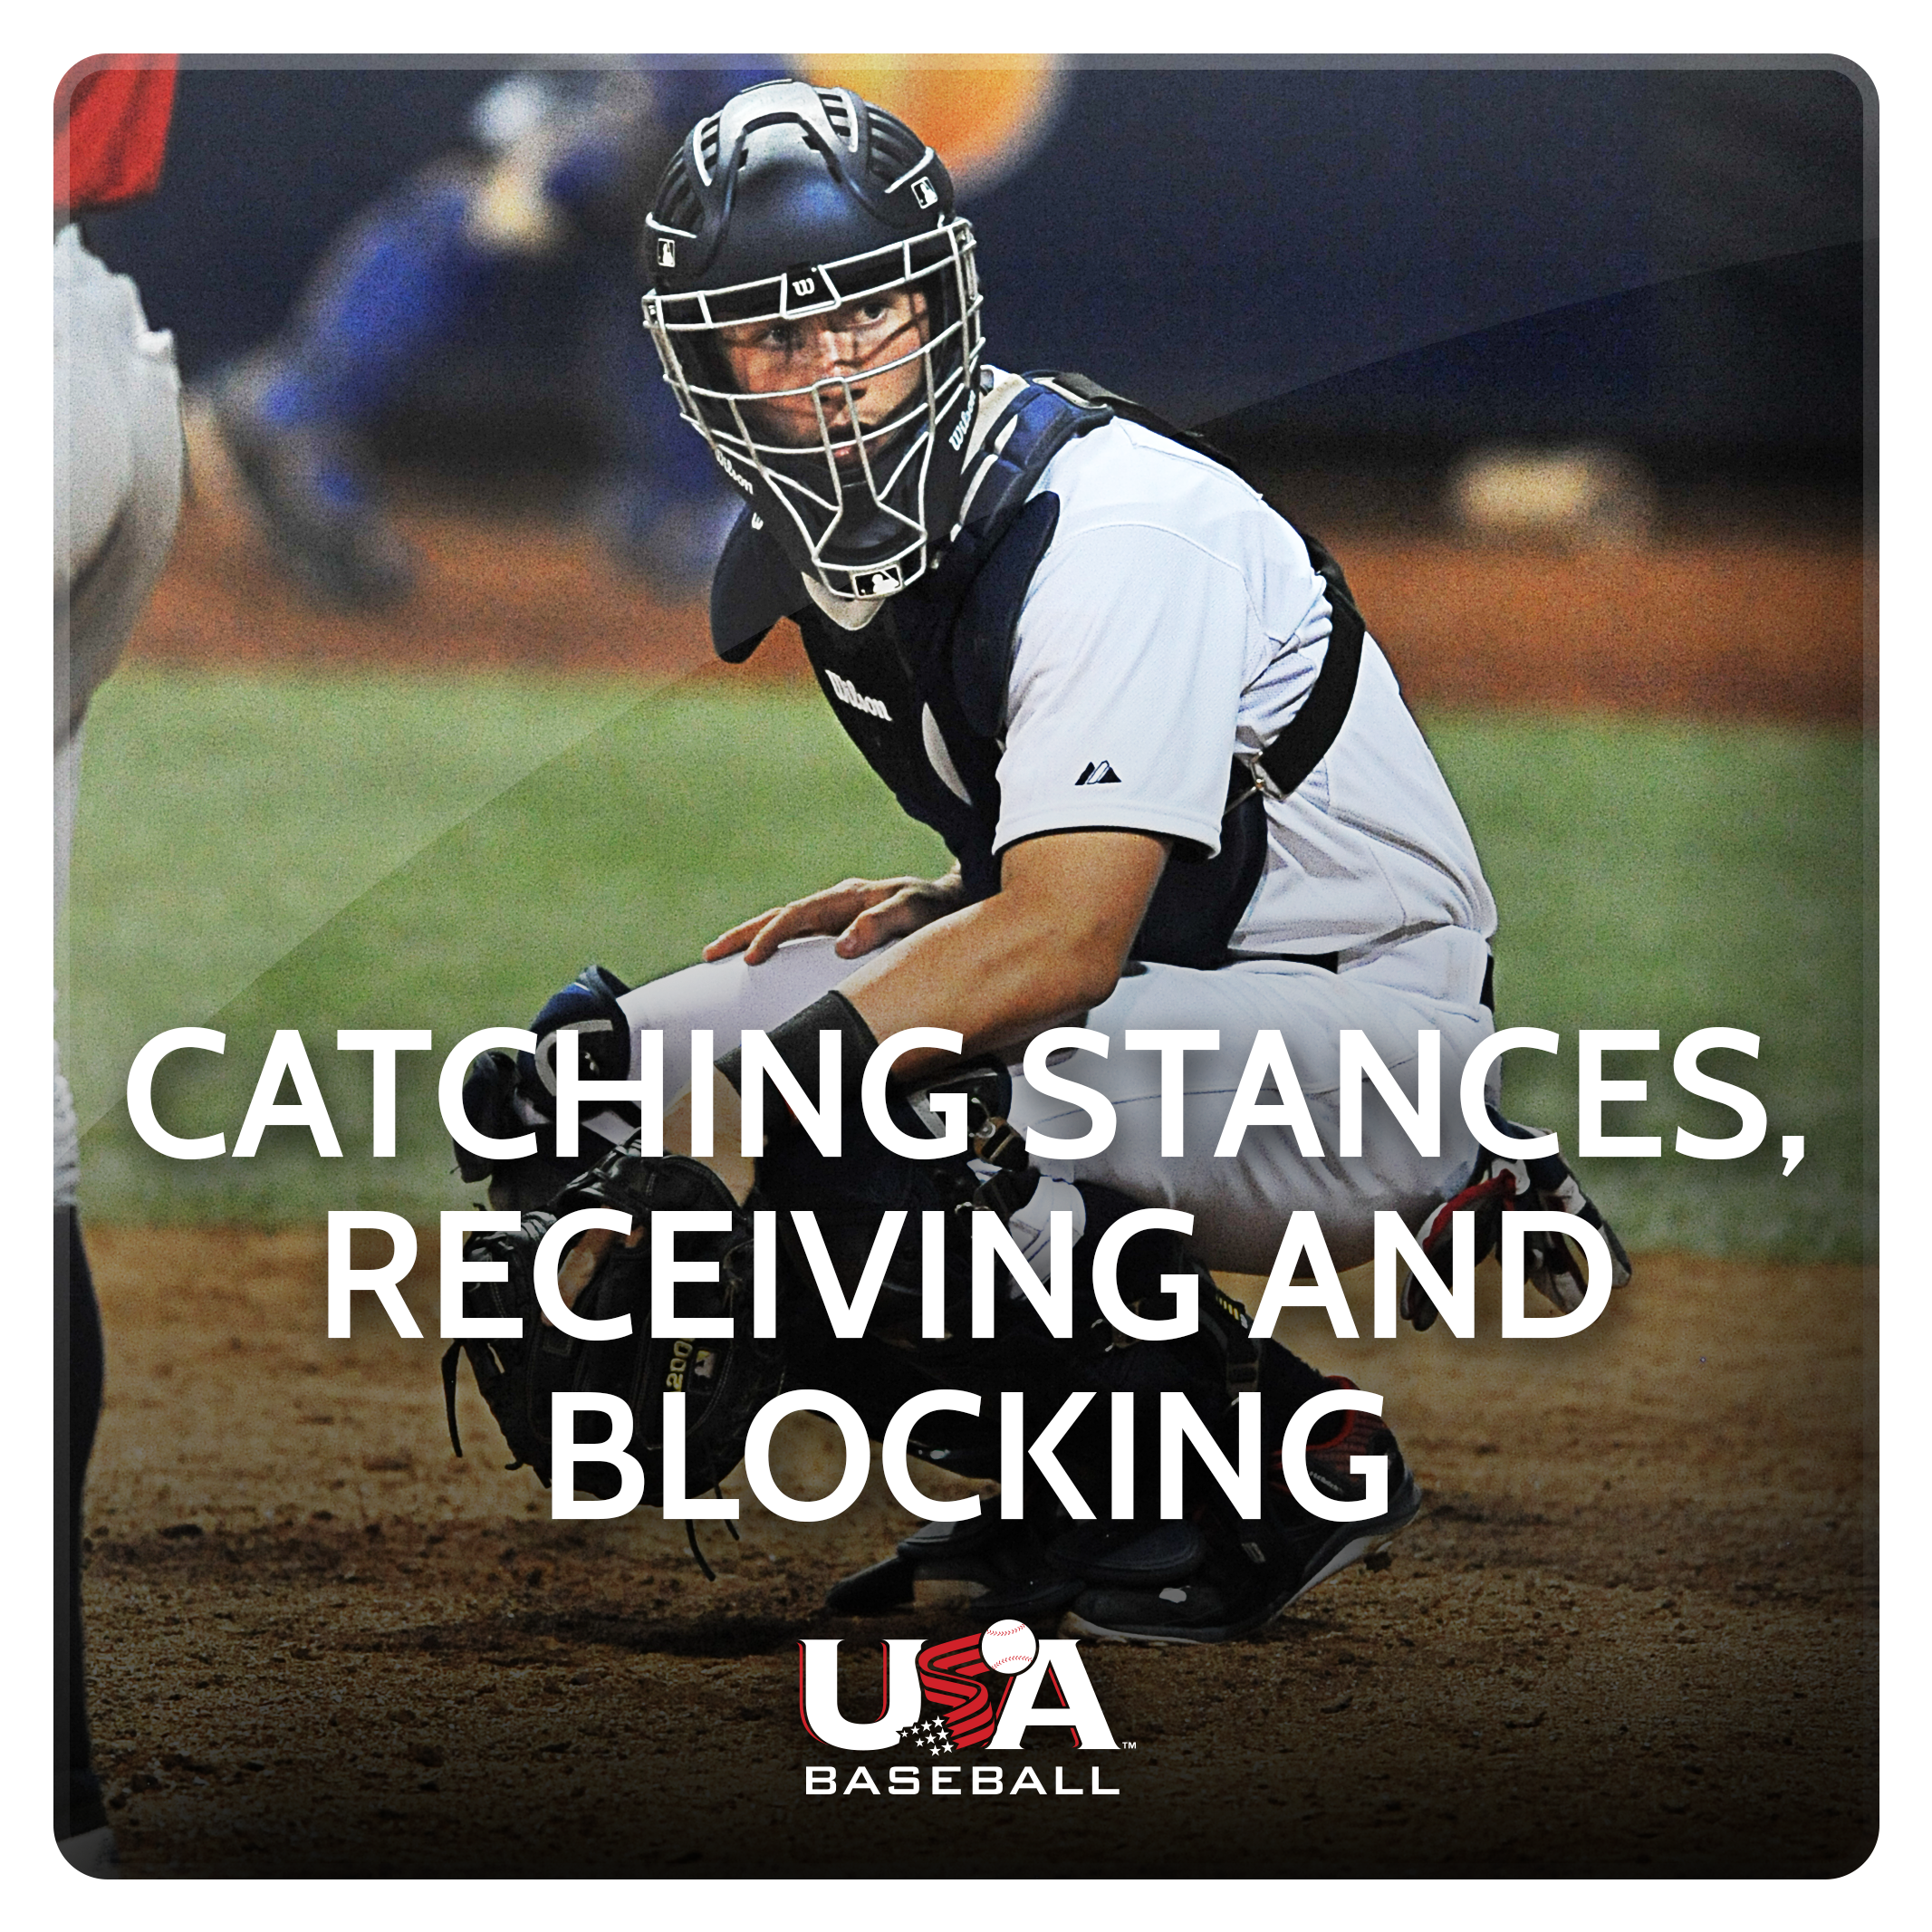 Catching Stances, Receiving and Blocking